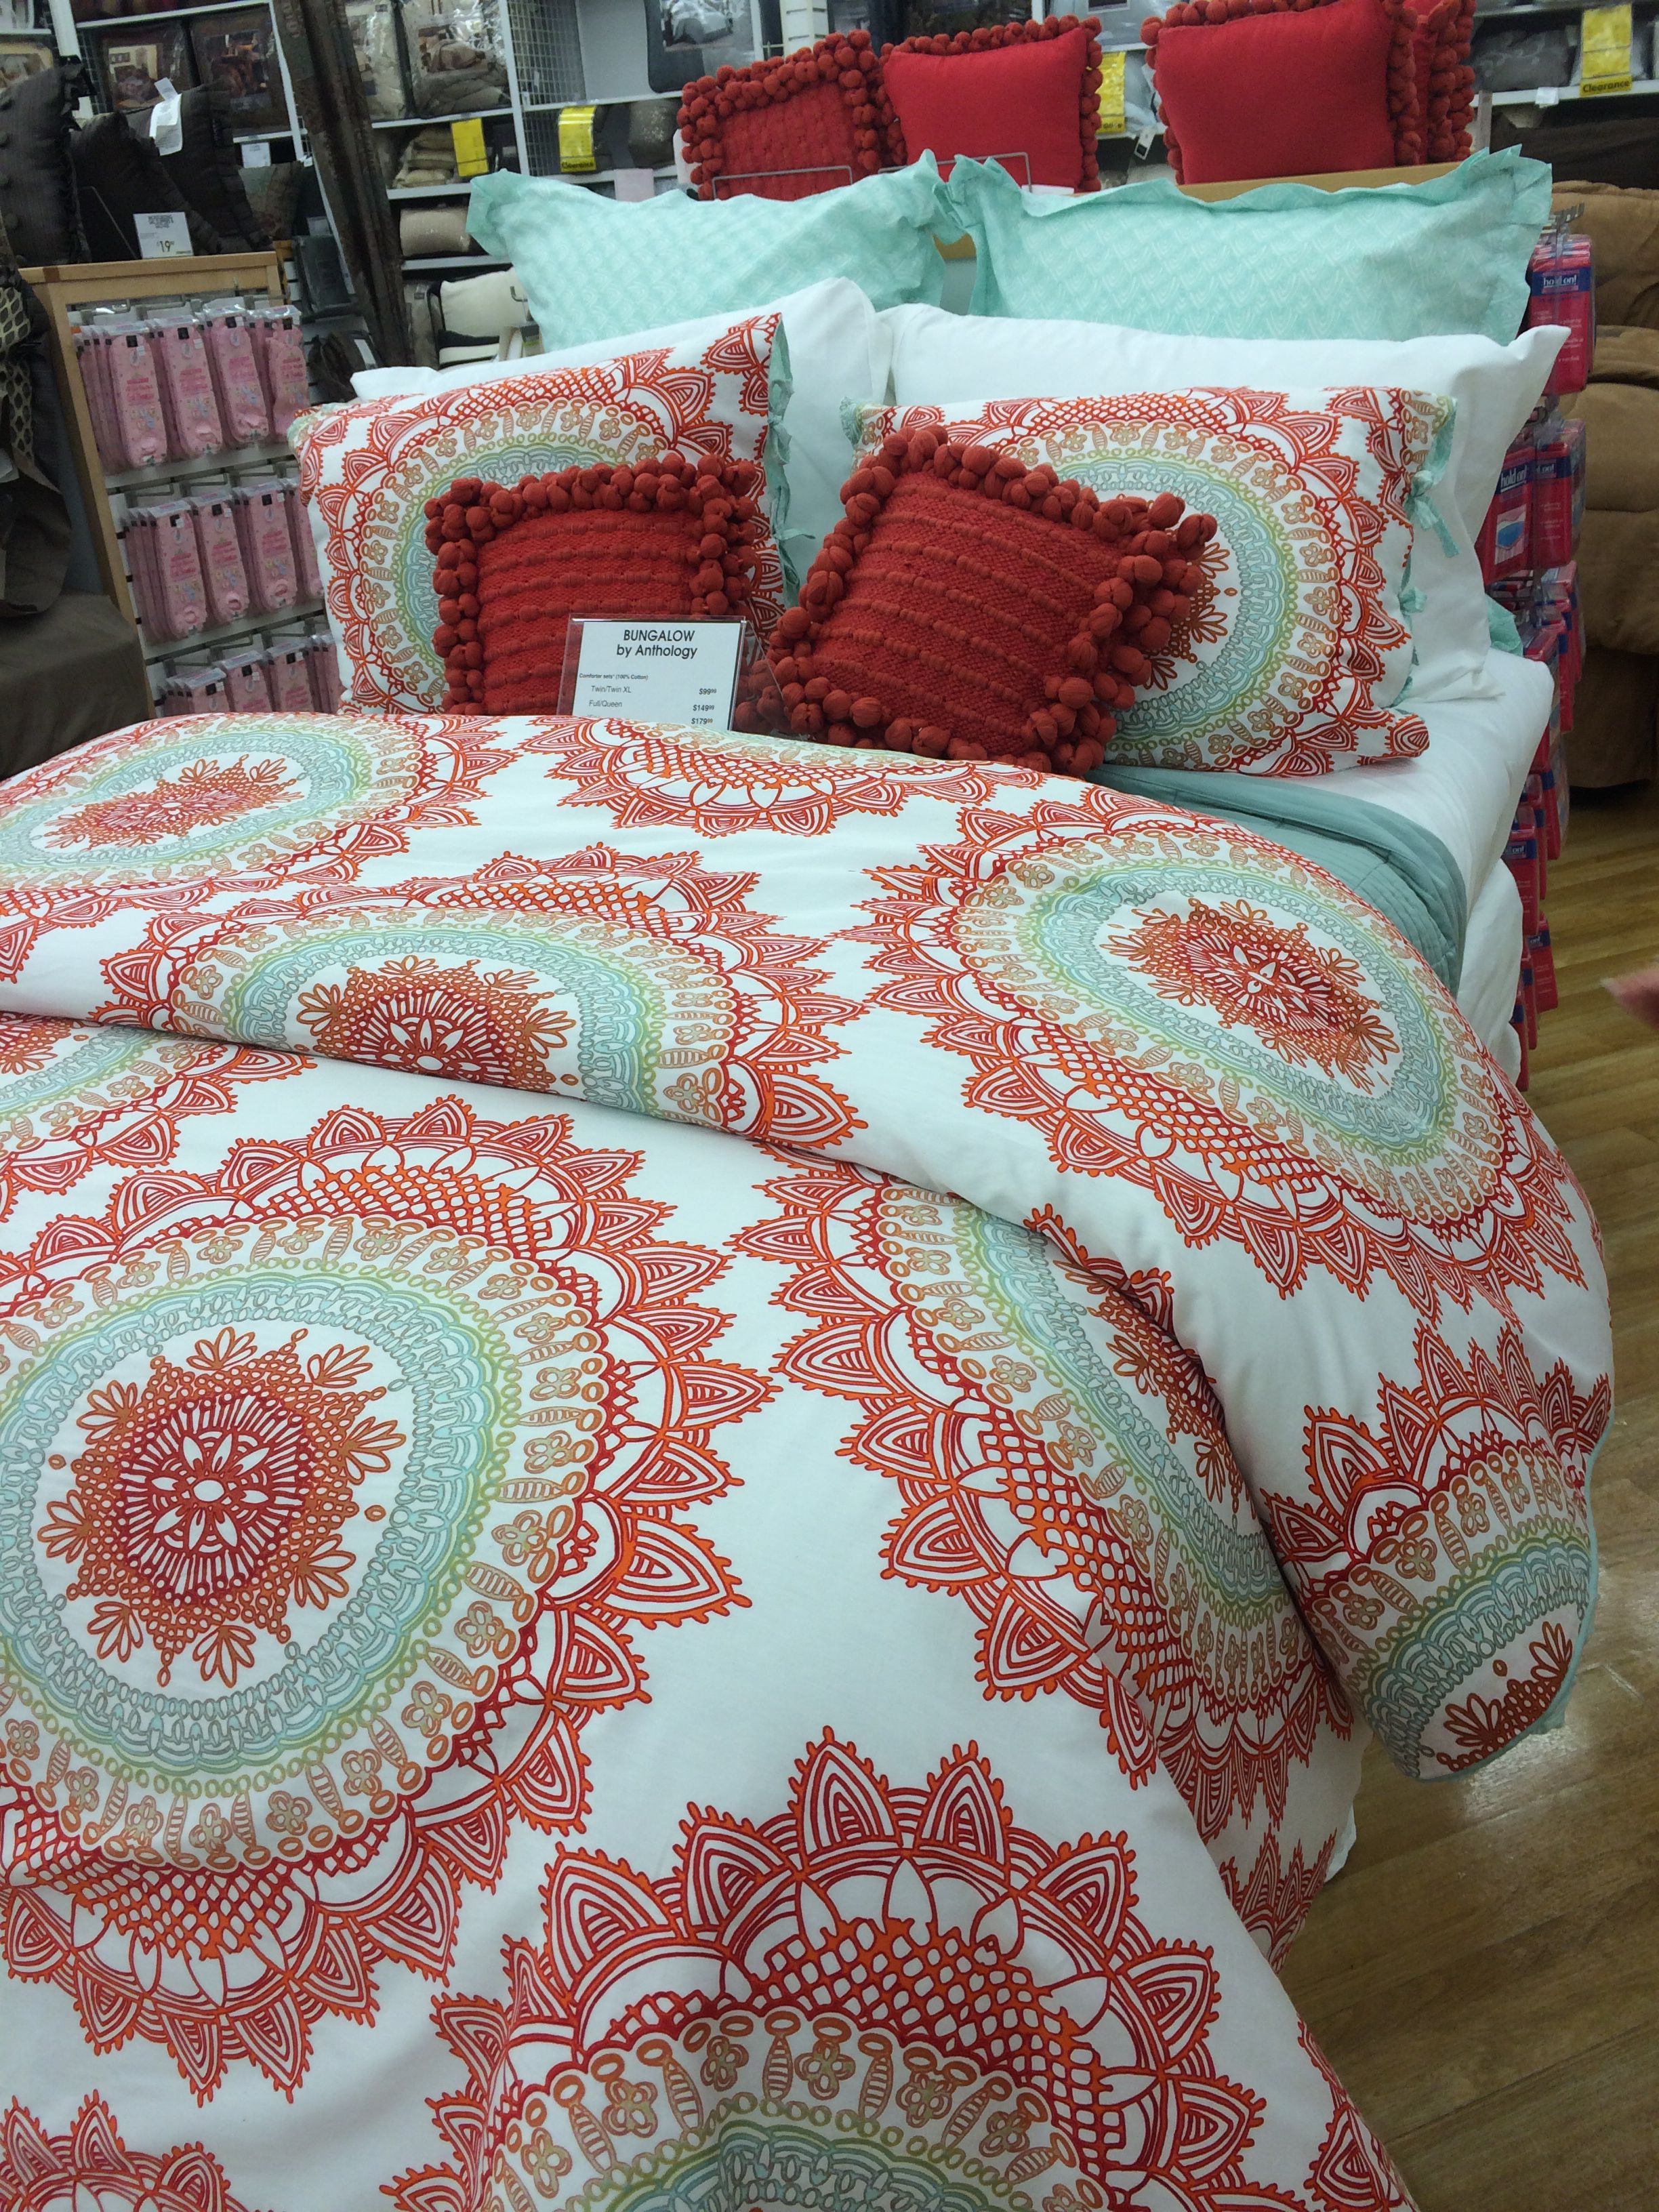 Bedding Bed Bath Beyond Bed Bath And Beyond Dorm